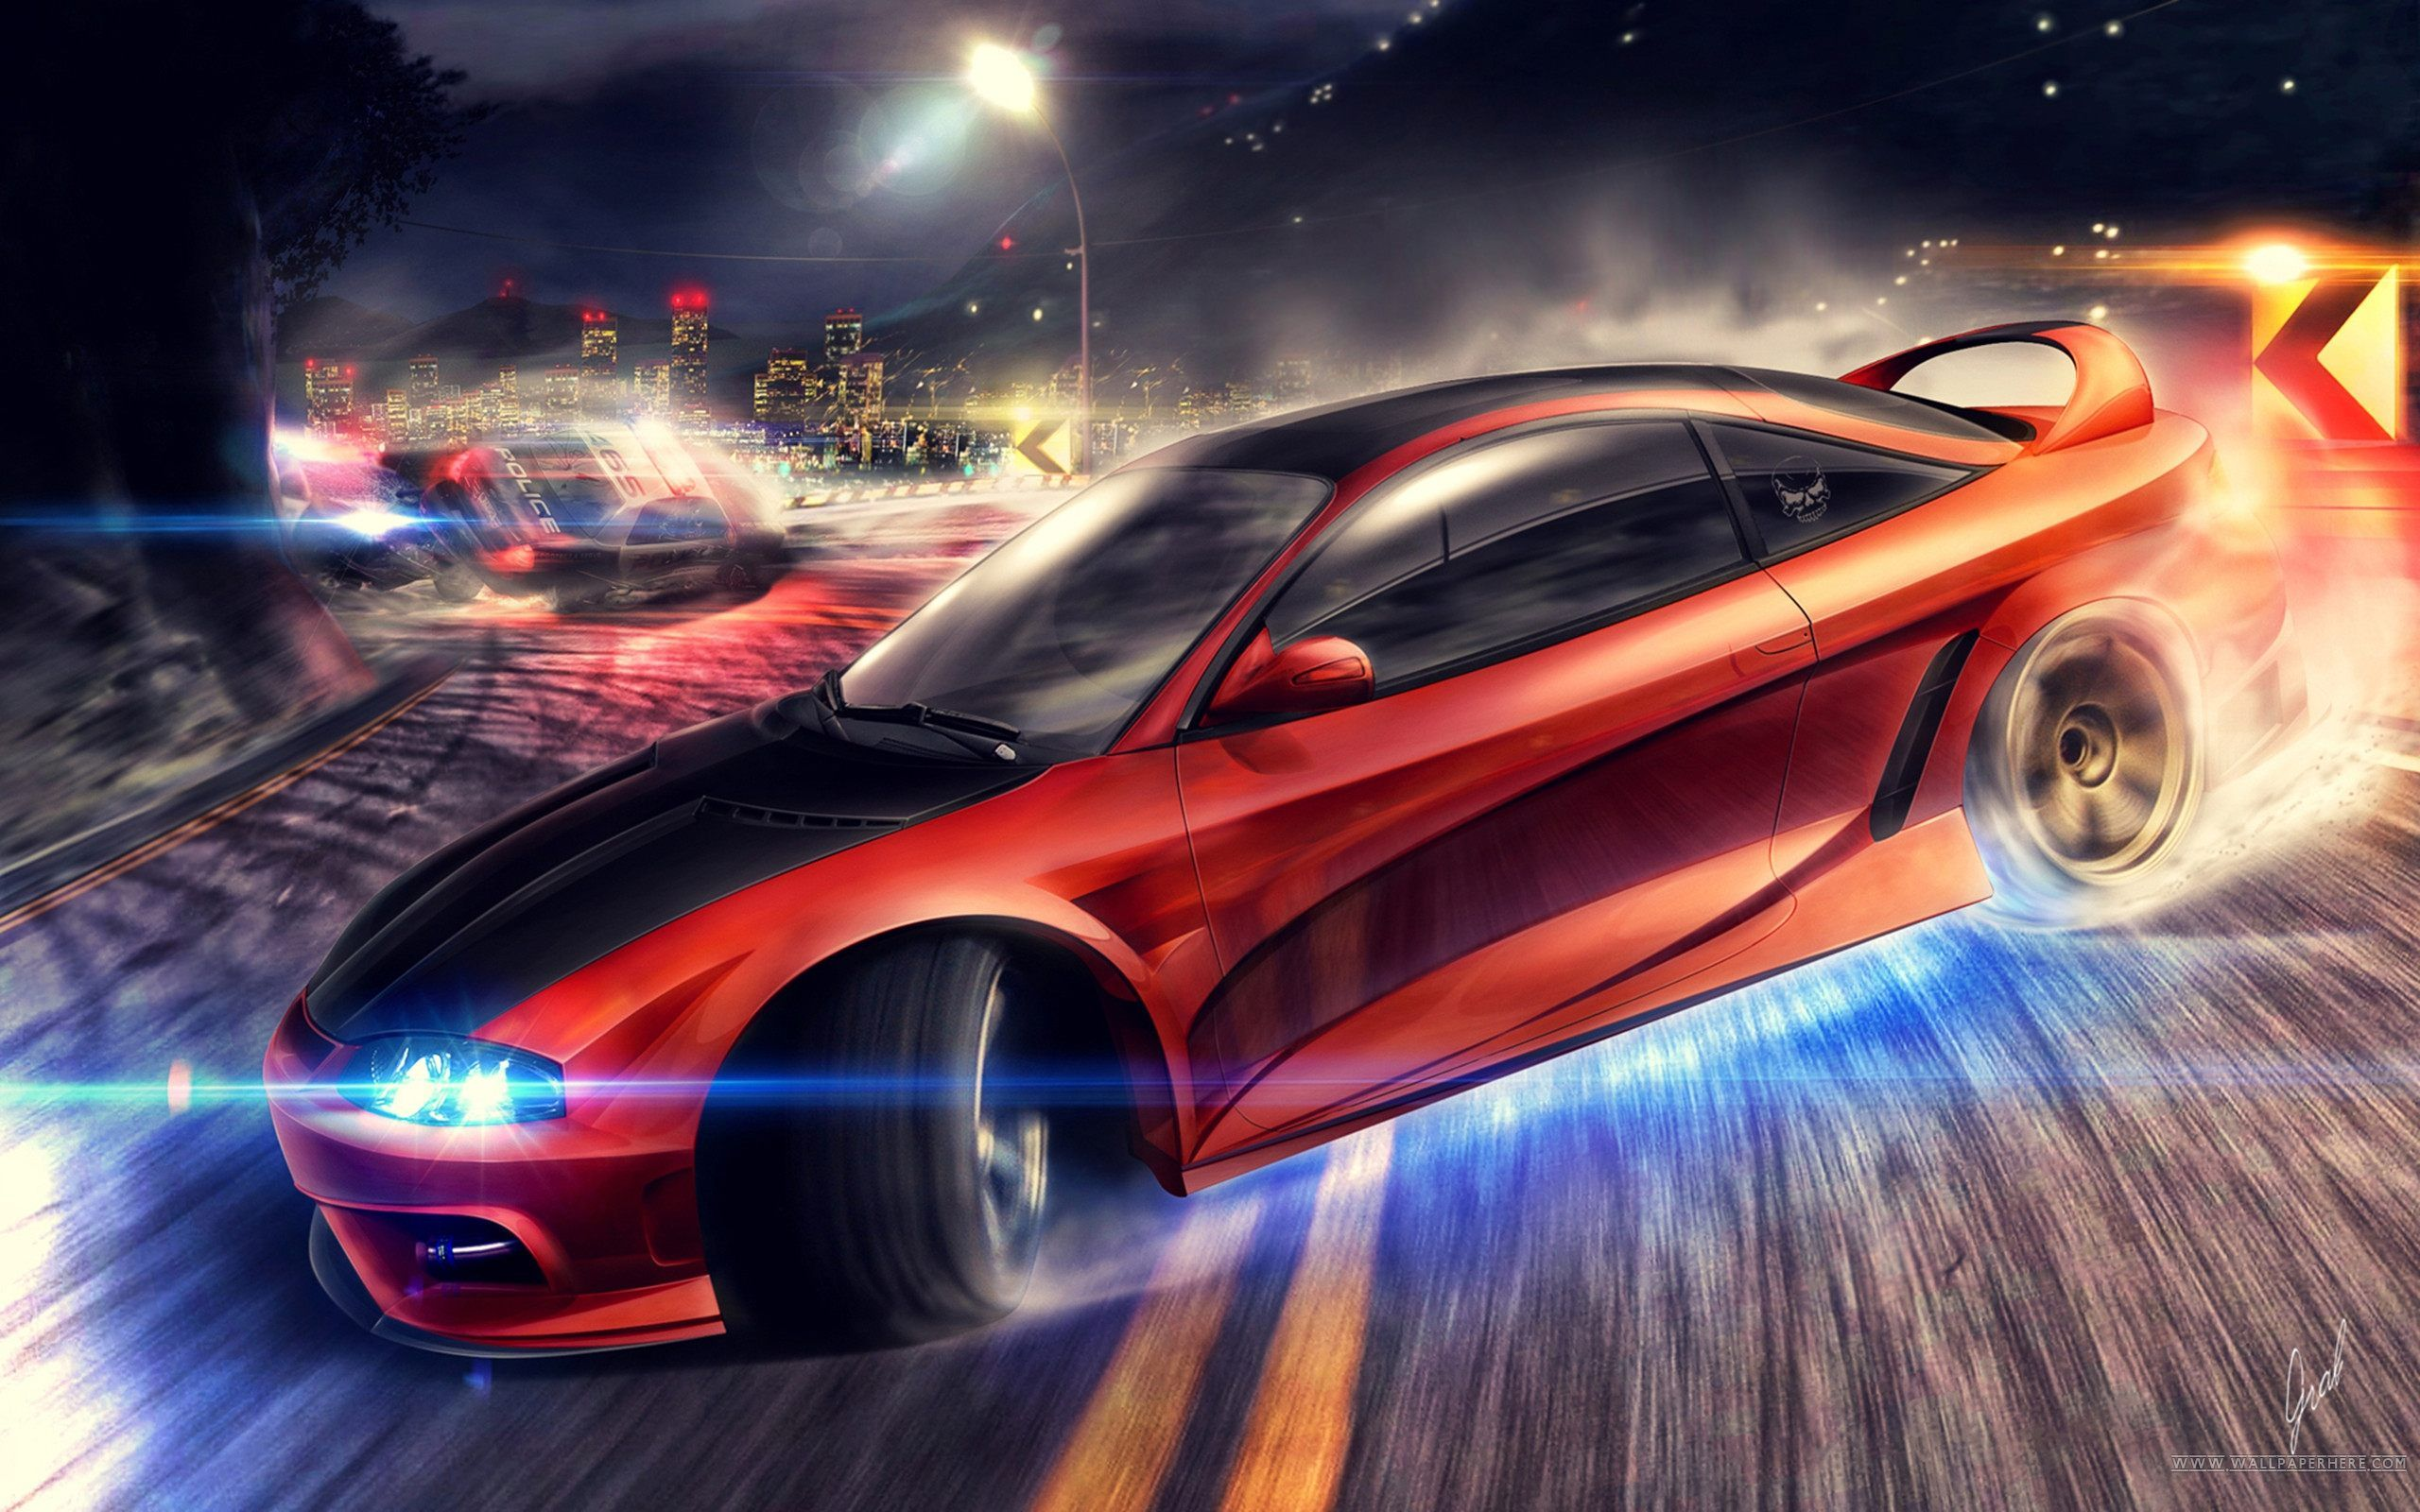 Mobile Phone X Need For Speed World Wallpapers Hd Desktop